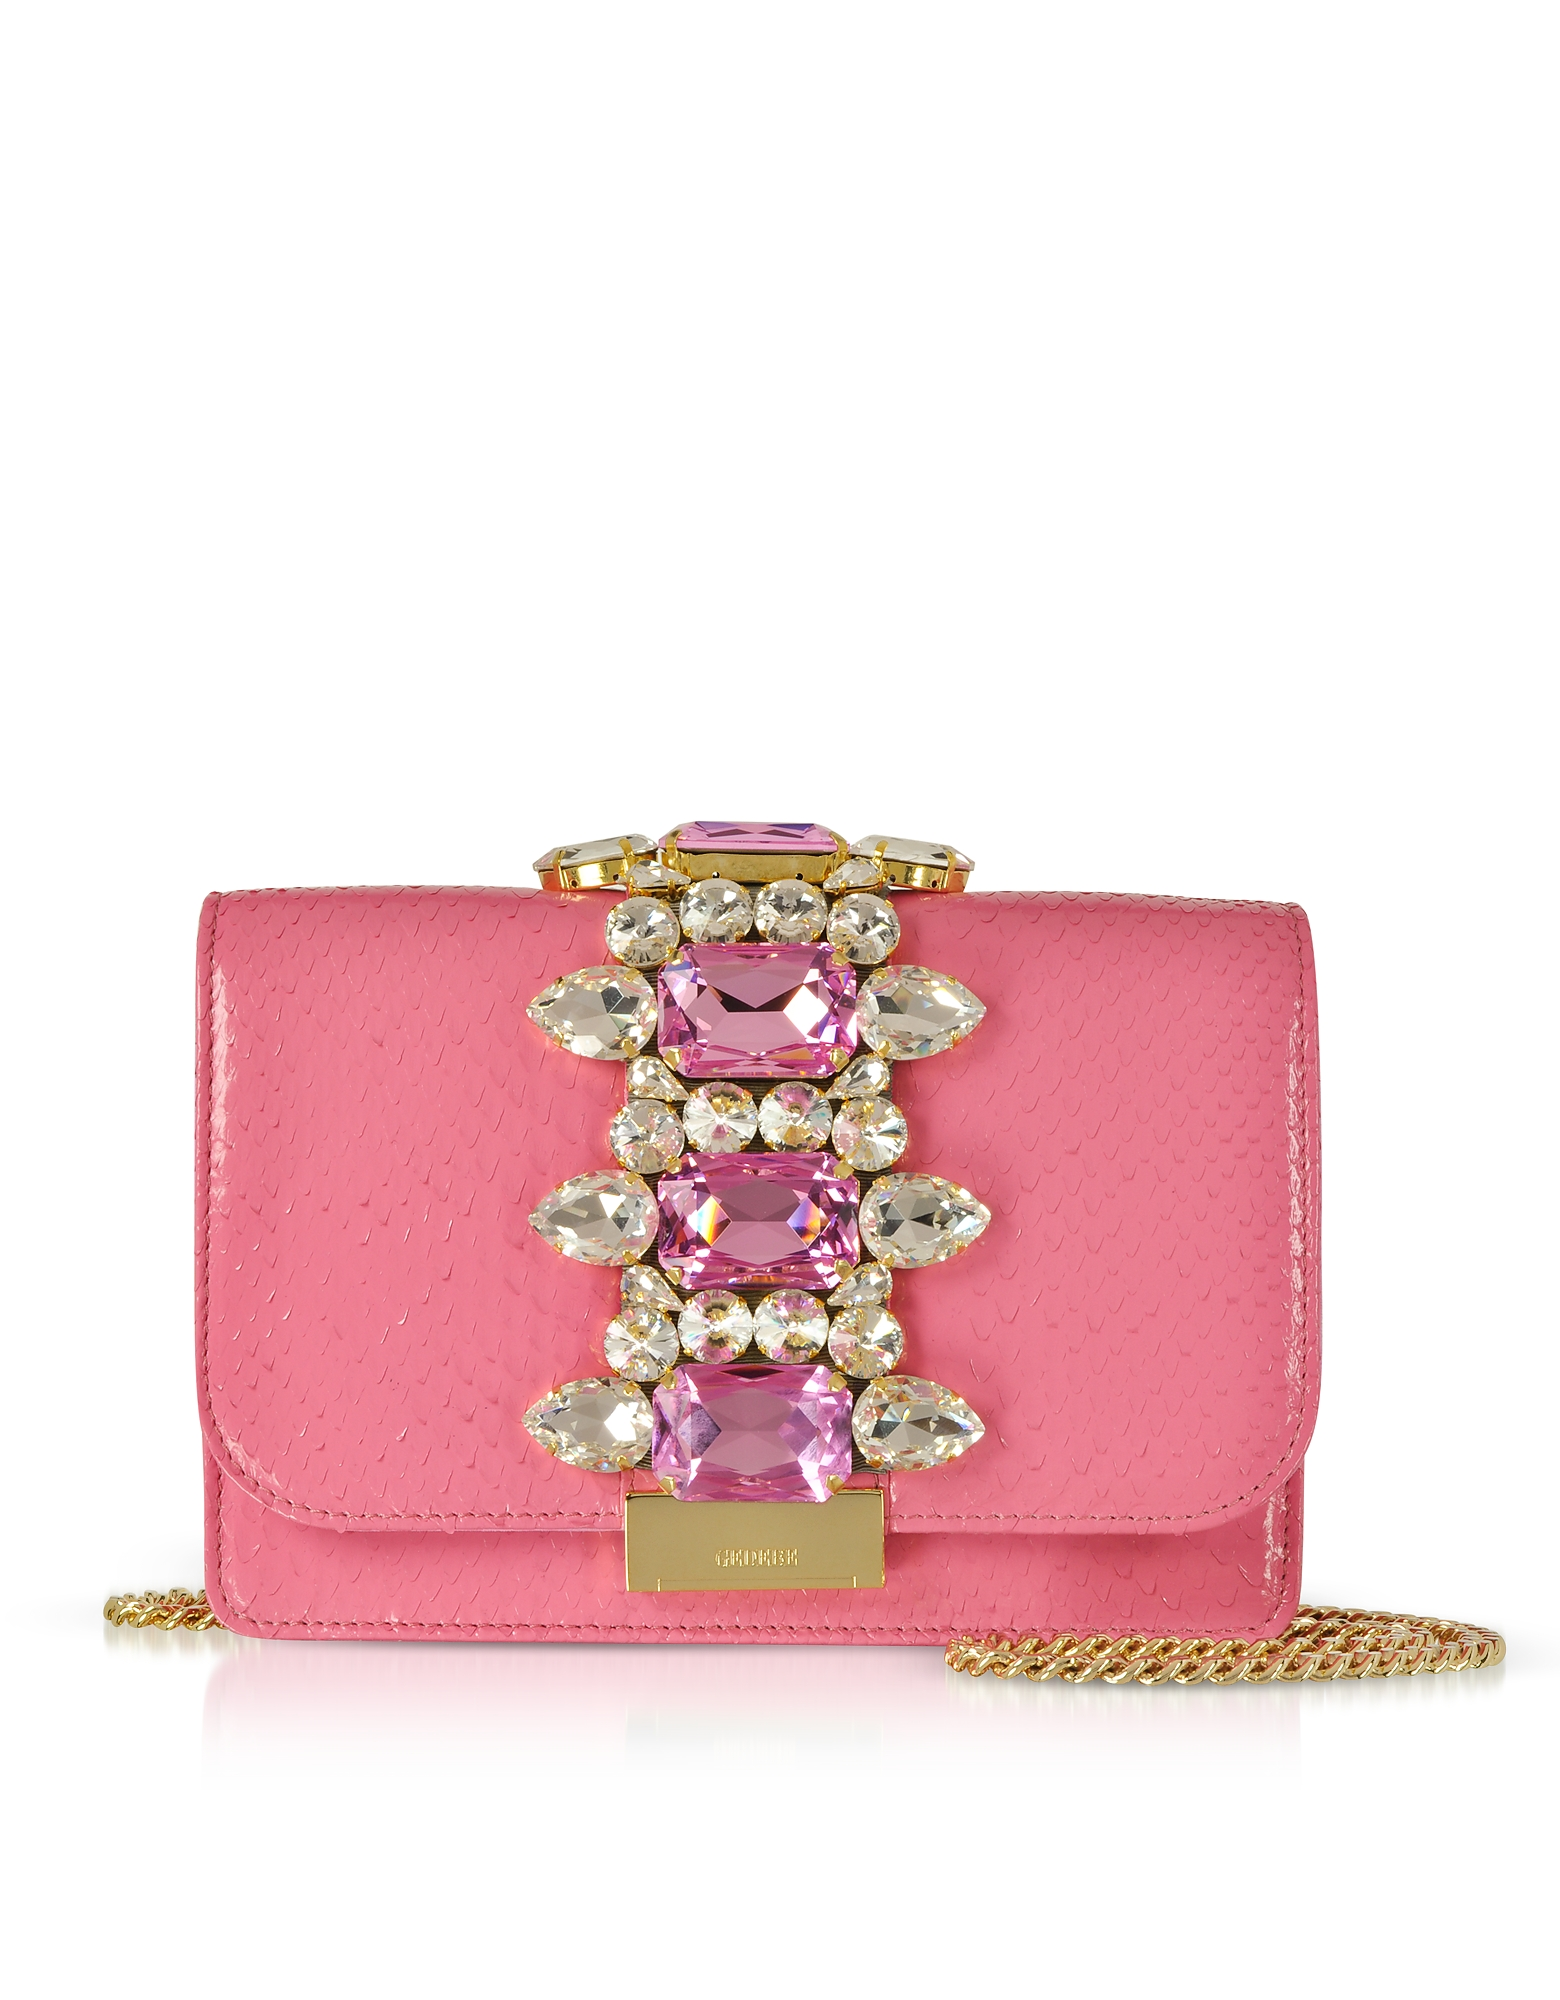 Cliky Barbie Python Clutch w/Crystals and Chain Strap